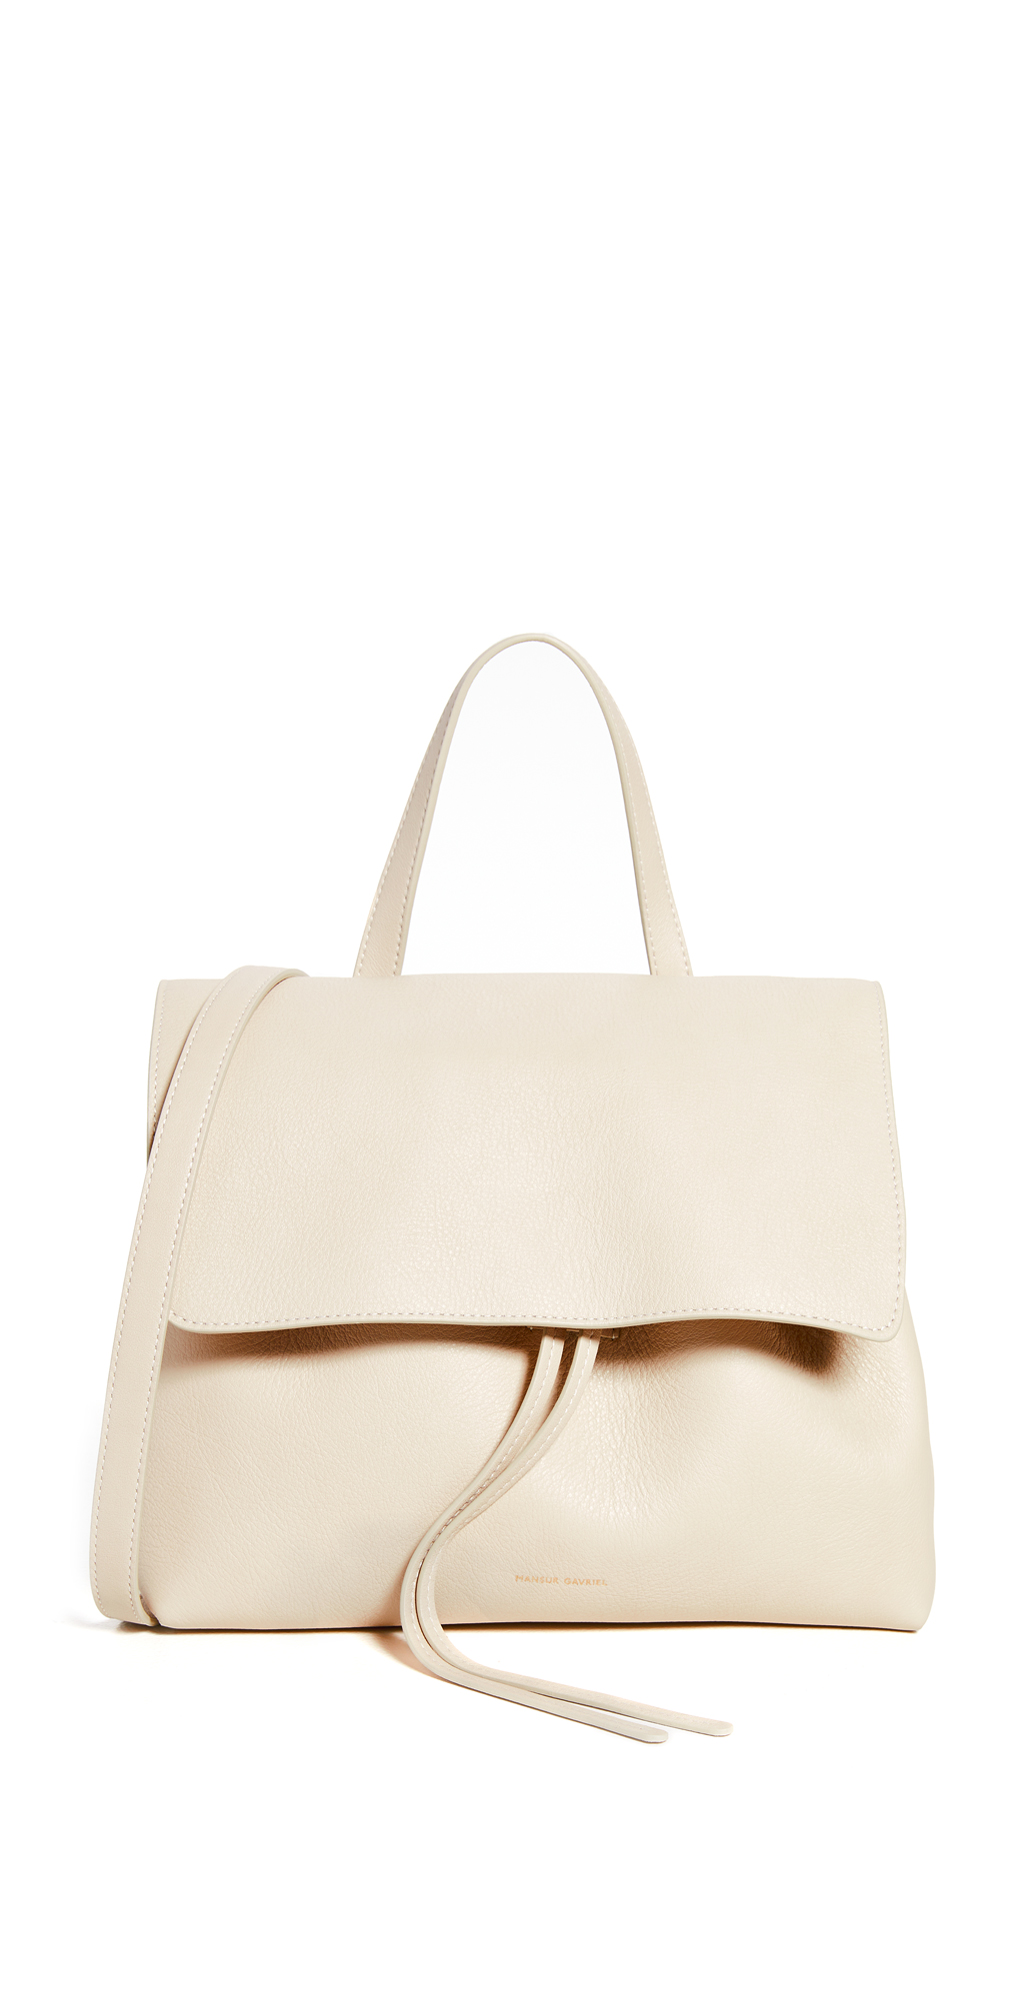 Mansur Gavriel Mini Soft Lady Bag